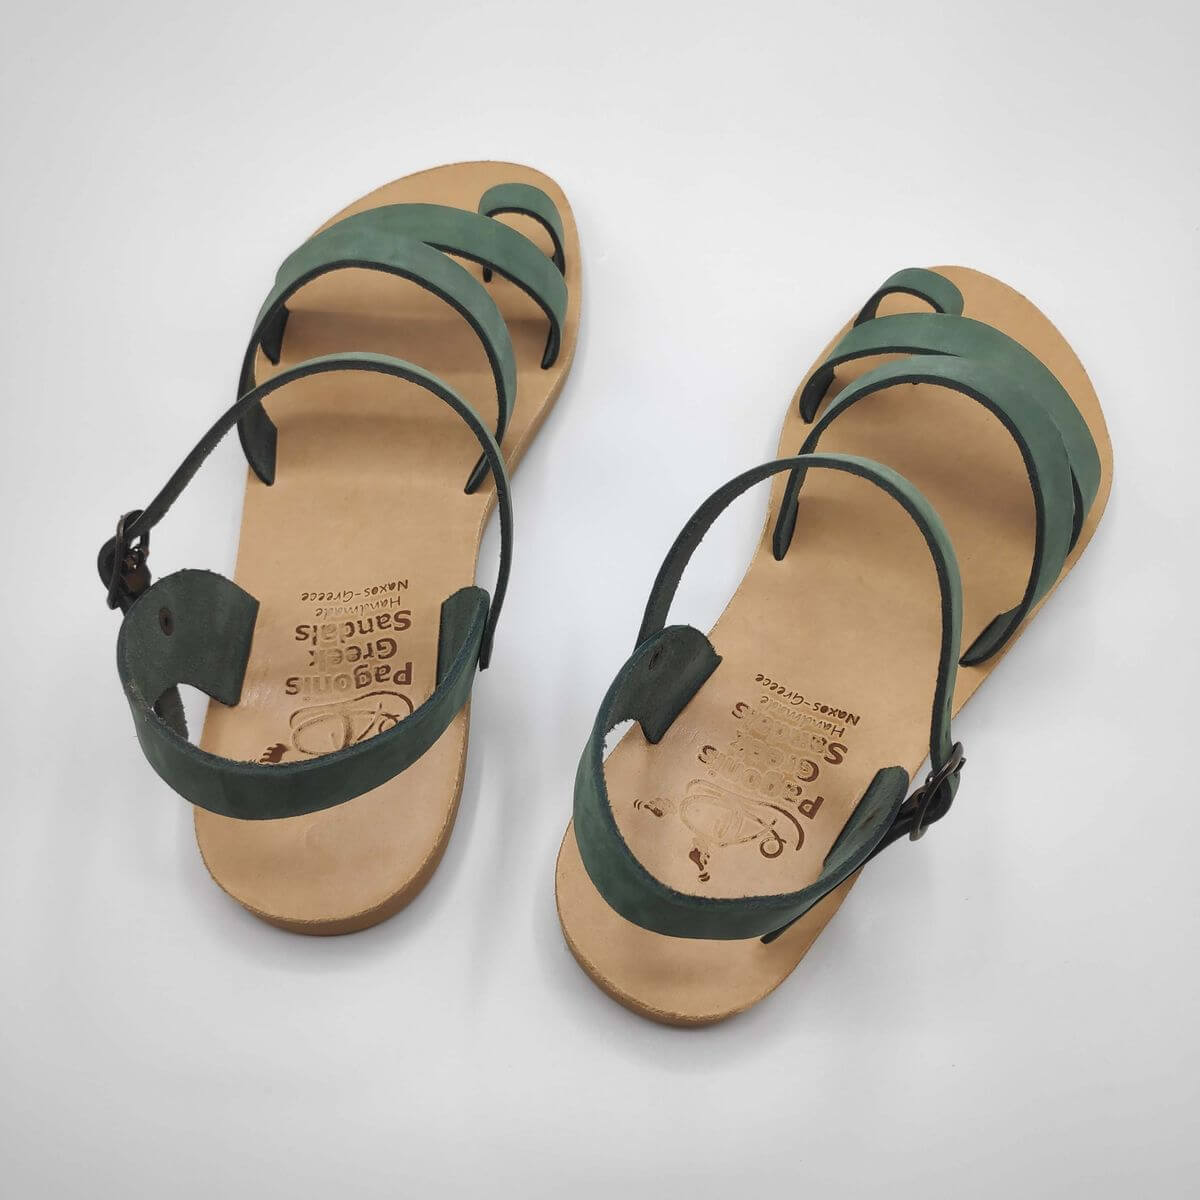 Green nubuck leather dressy sandals with two straps, toe ring and high ankle strap, back view